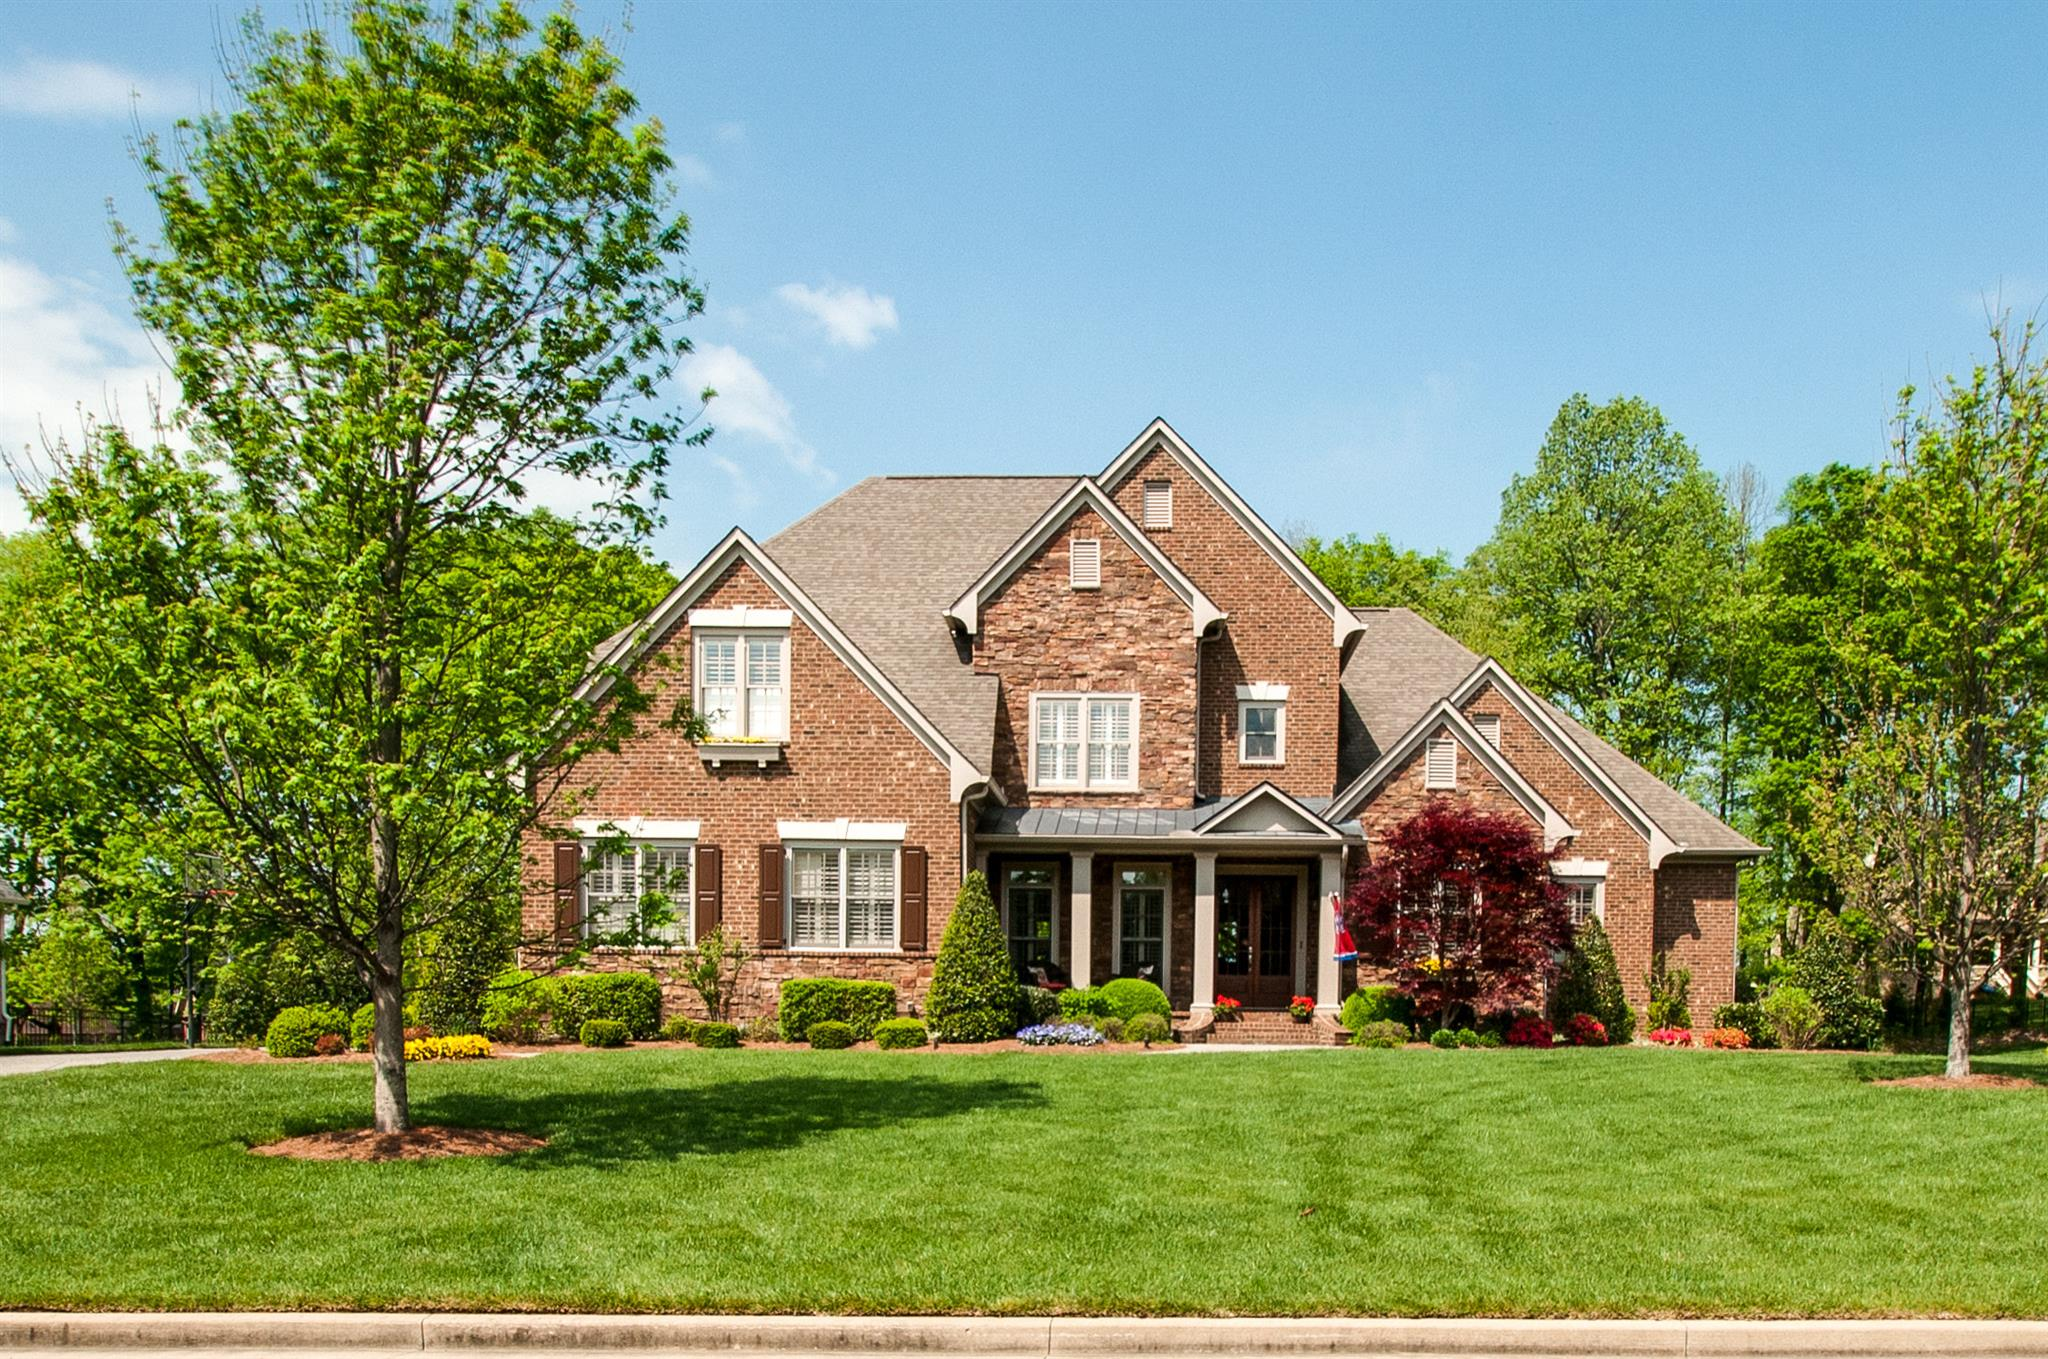 1805 Ivy Crest Dr, Brentwood, TN 37027